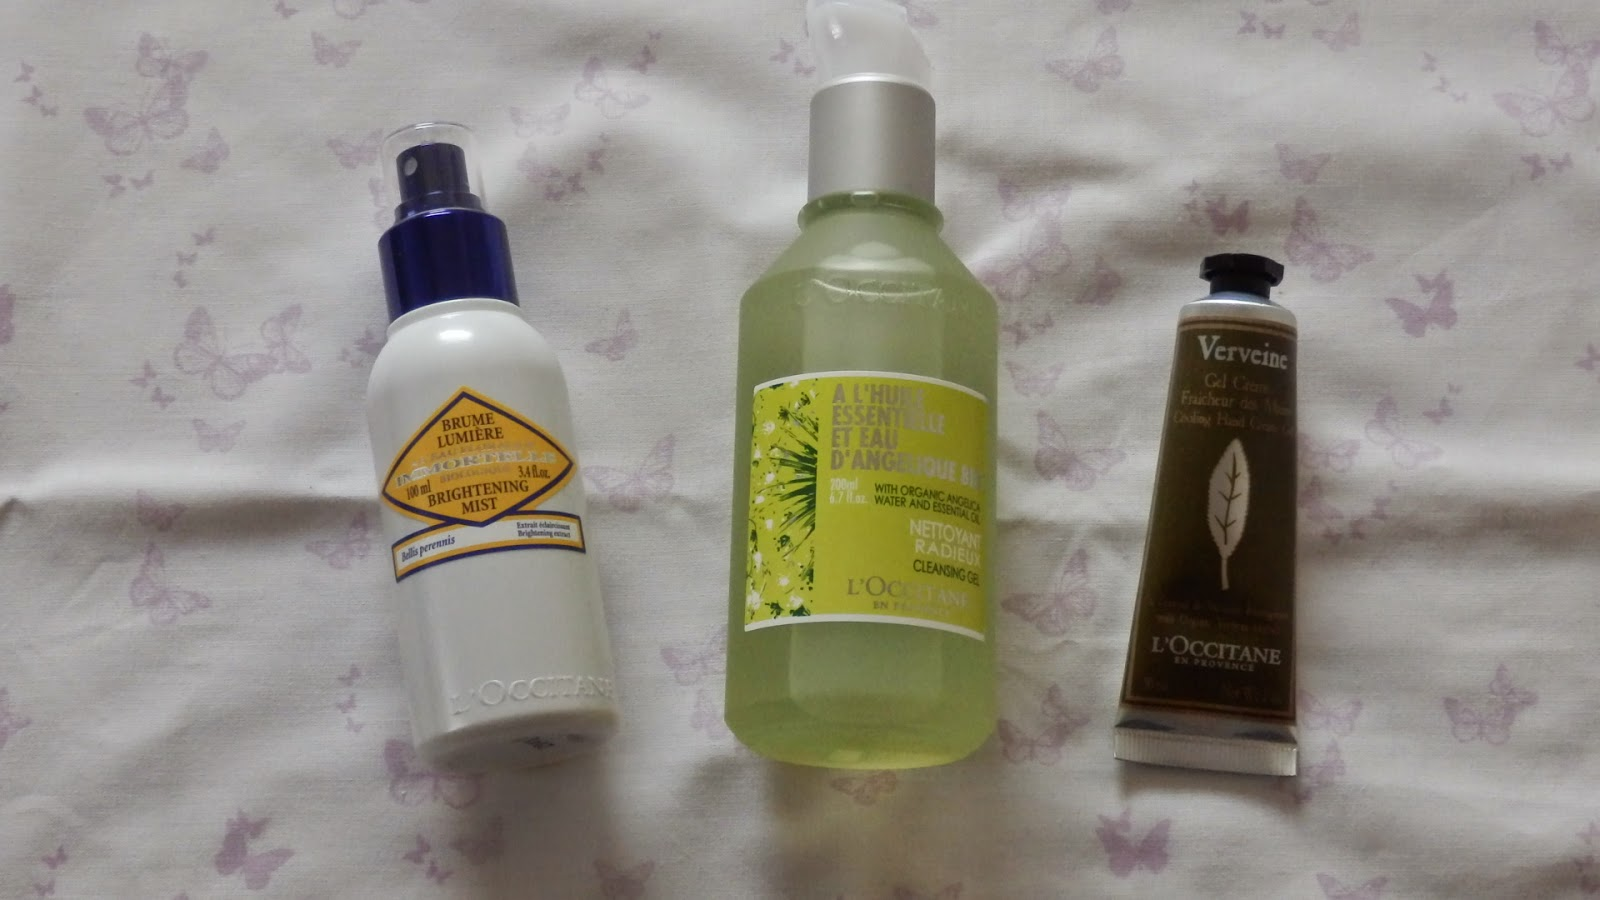 L'Occitane Instyle Shopping Event Haul Immortelle Brightening Mist, Angelica Cleansing Gel & Verveine Cooling Hand Gel